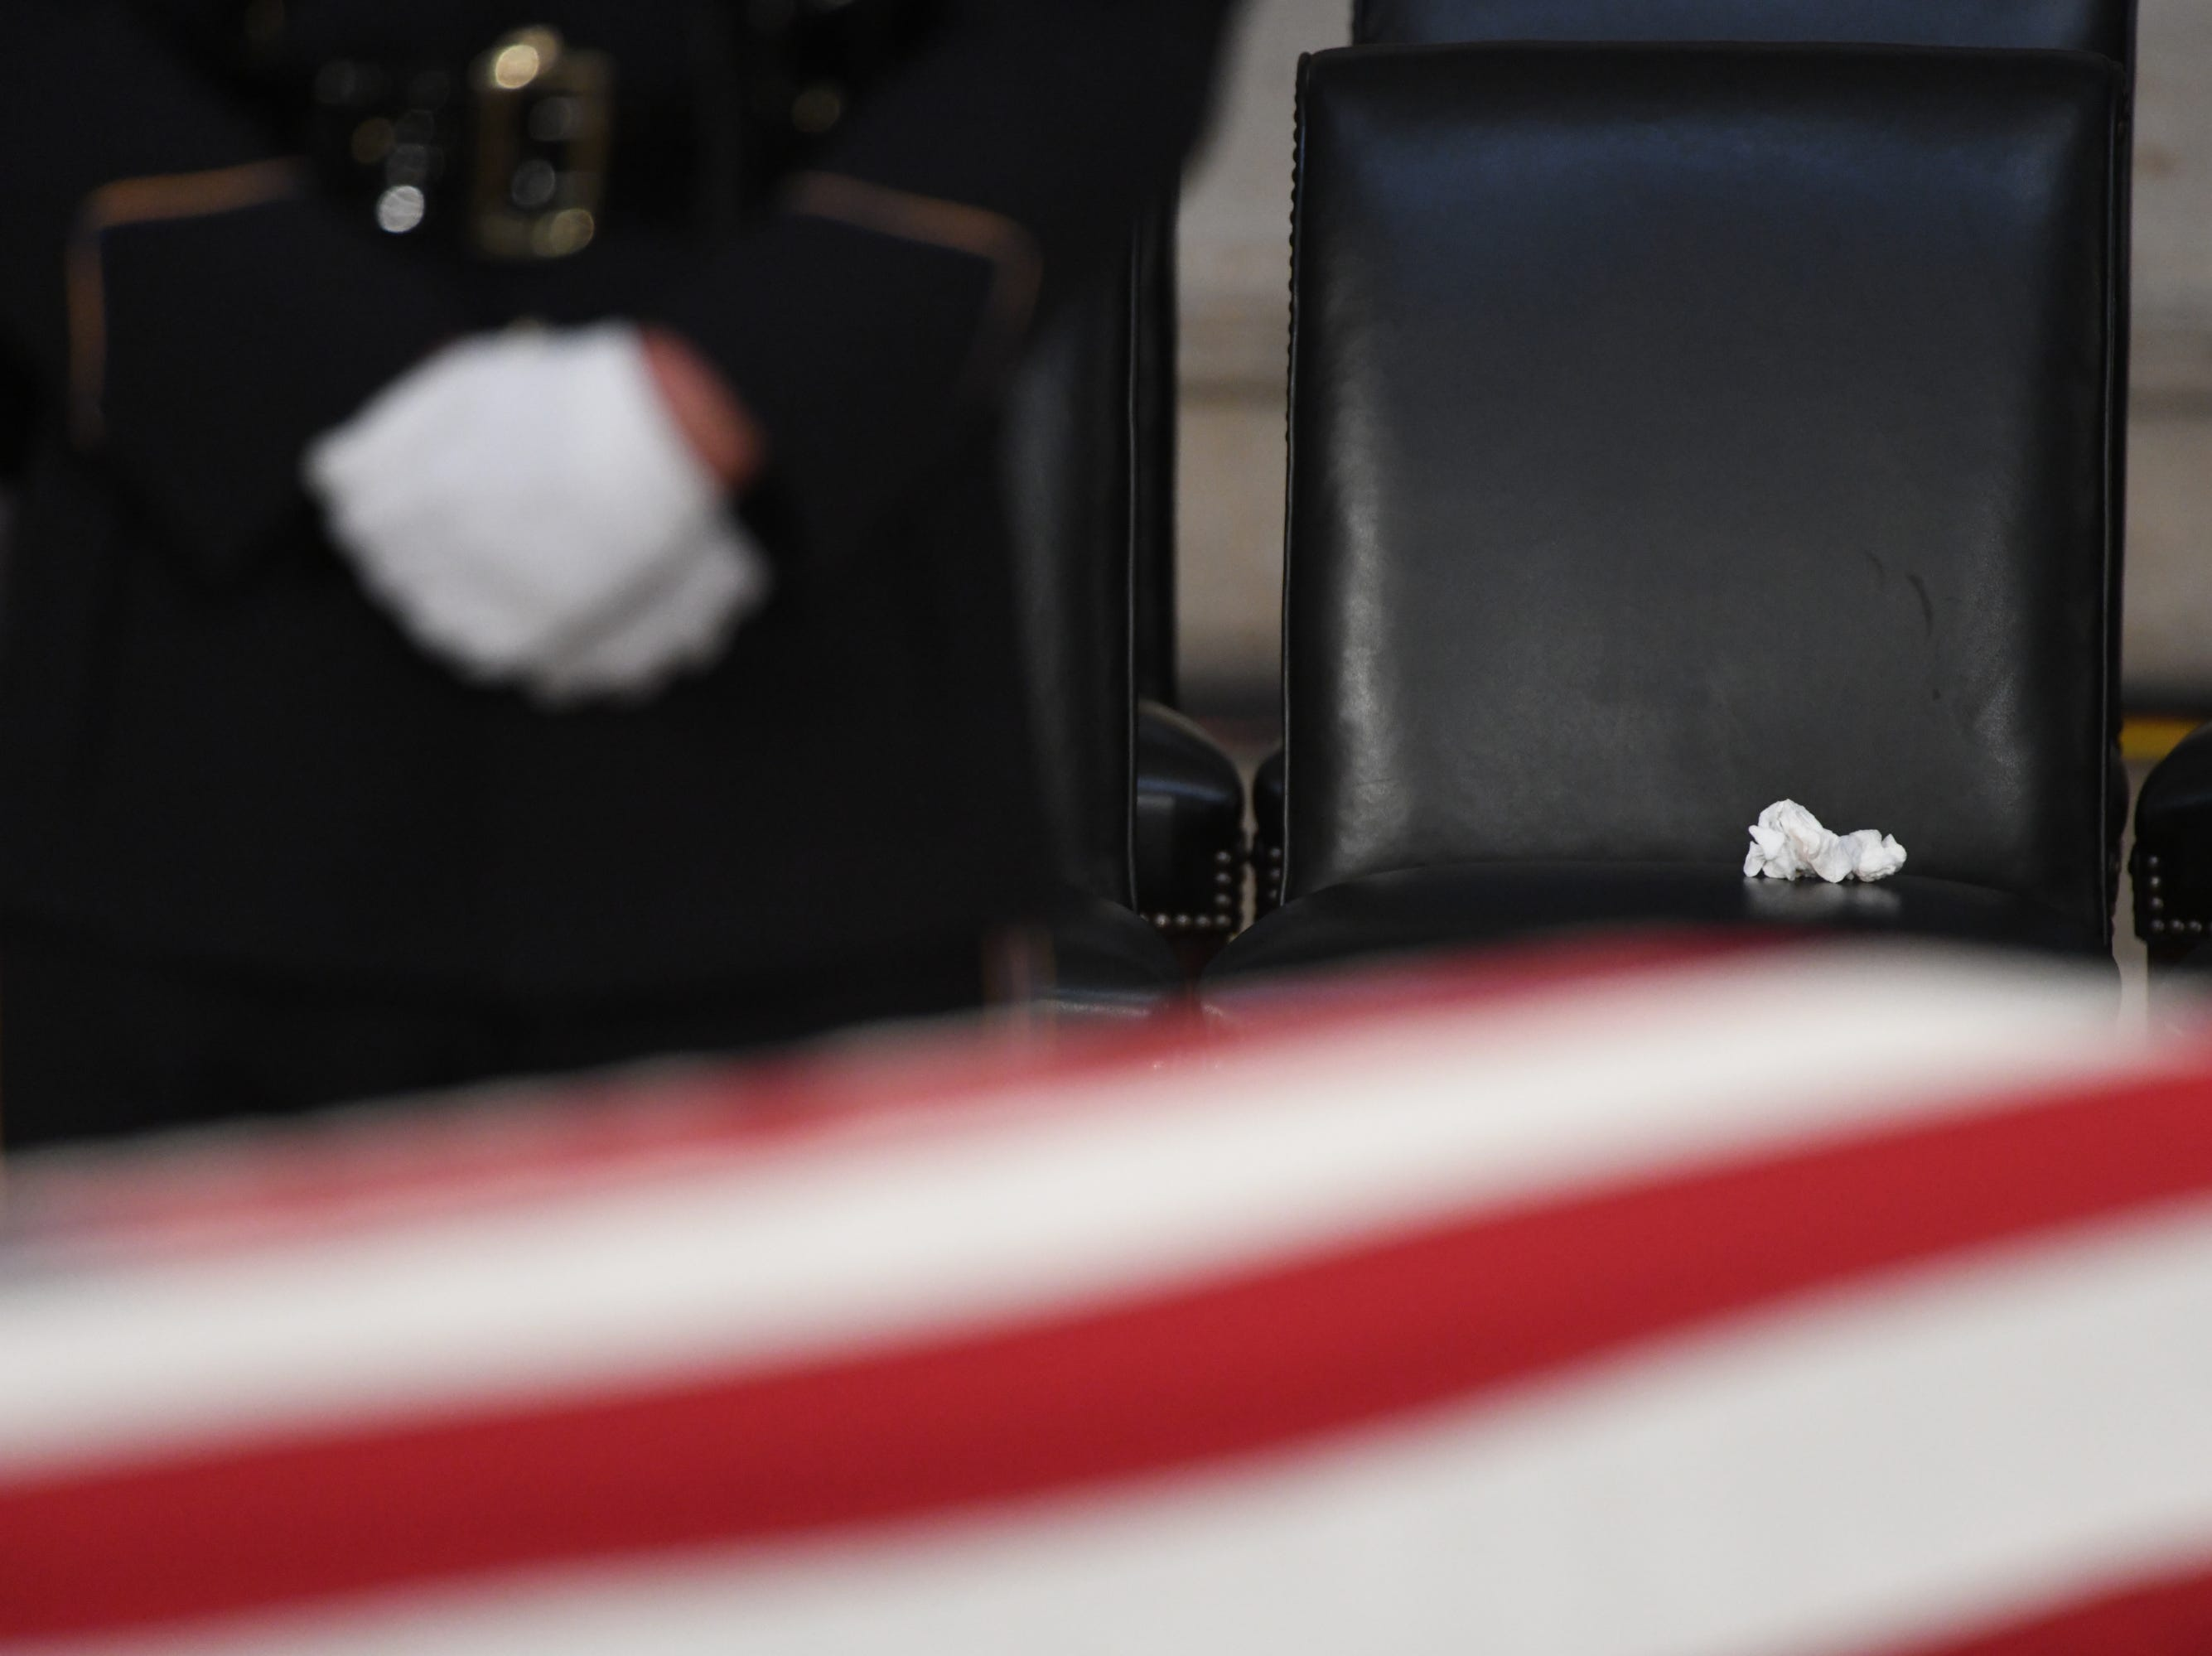 Meghan McCain's tissue sits on her chair at a memorial for her father, Sen. John McCain, at the U.S. Capitol in Washington on Aug. 31, 2018.